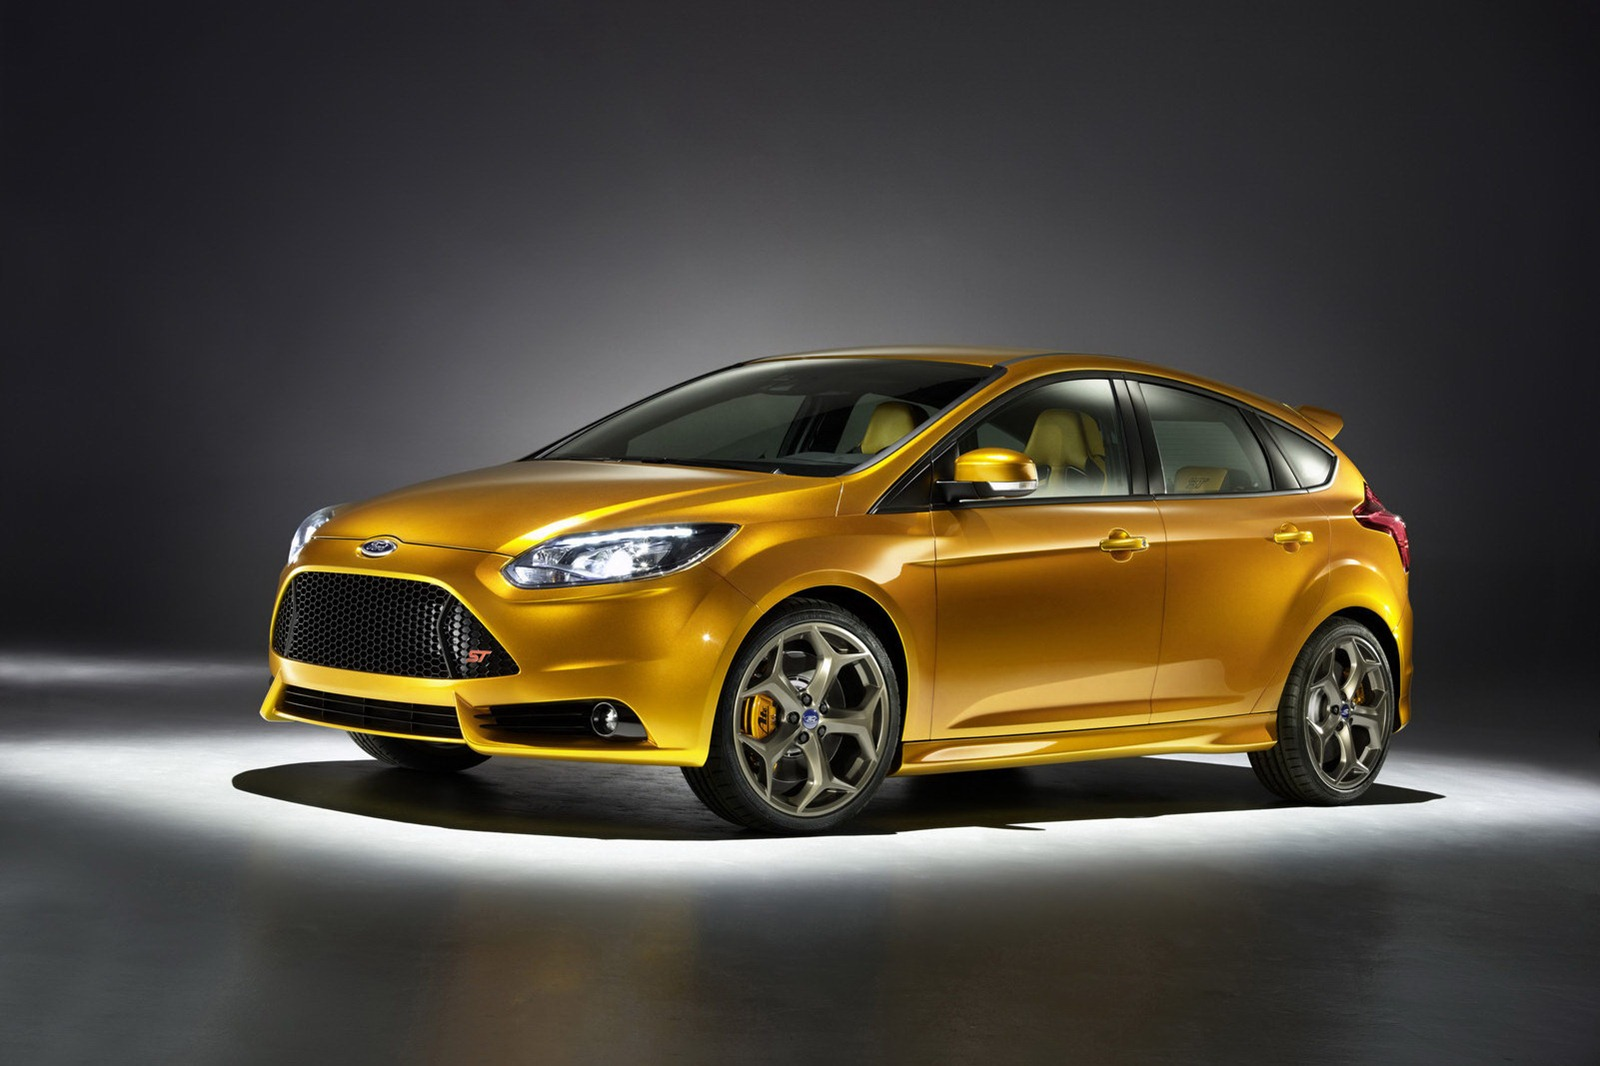 2013 ford focus st us pricing leaked autoevolution. Black Bedroom Furniture Sets. Home Design Ideas